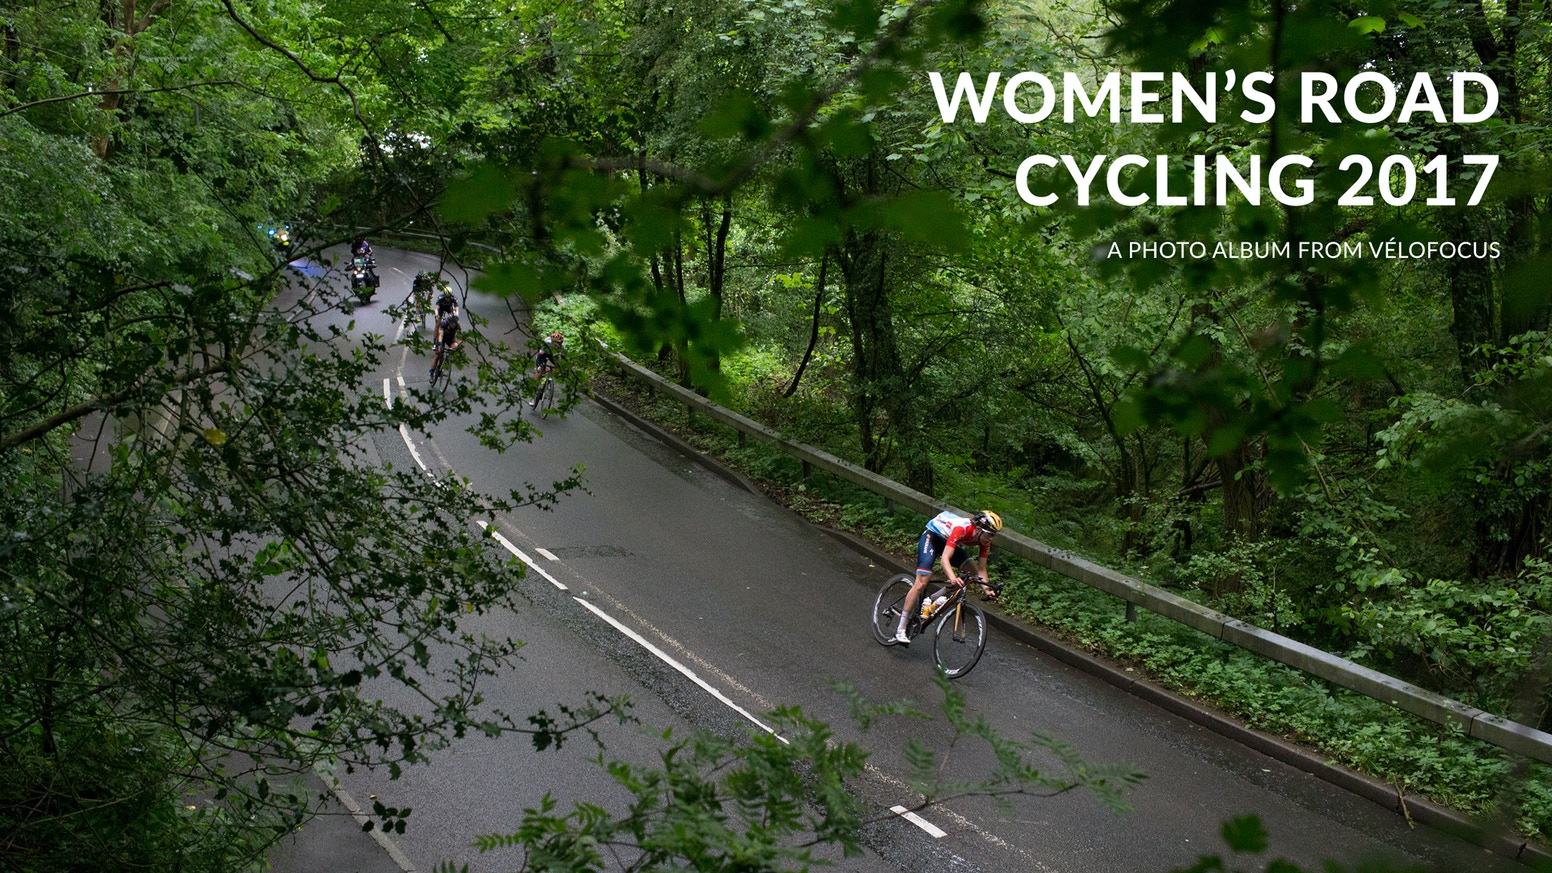 Women's Road Cycling 2017 is a hardcover coffee table photography album from the photographers behind Vélofocus. If you missed out on the Kickstarter there's still time to order your copy on our website. But don't wait too long, stocks are limited!